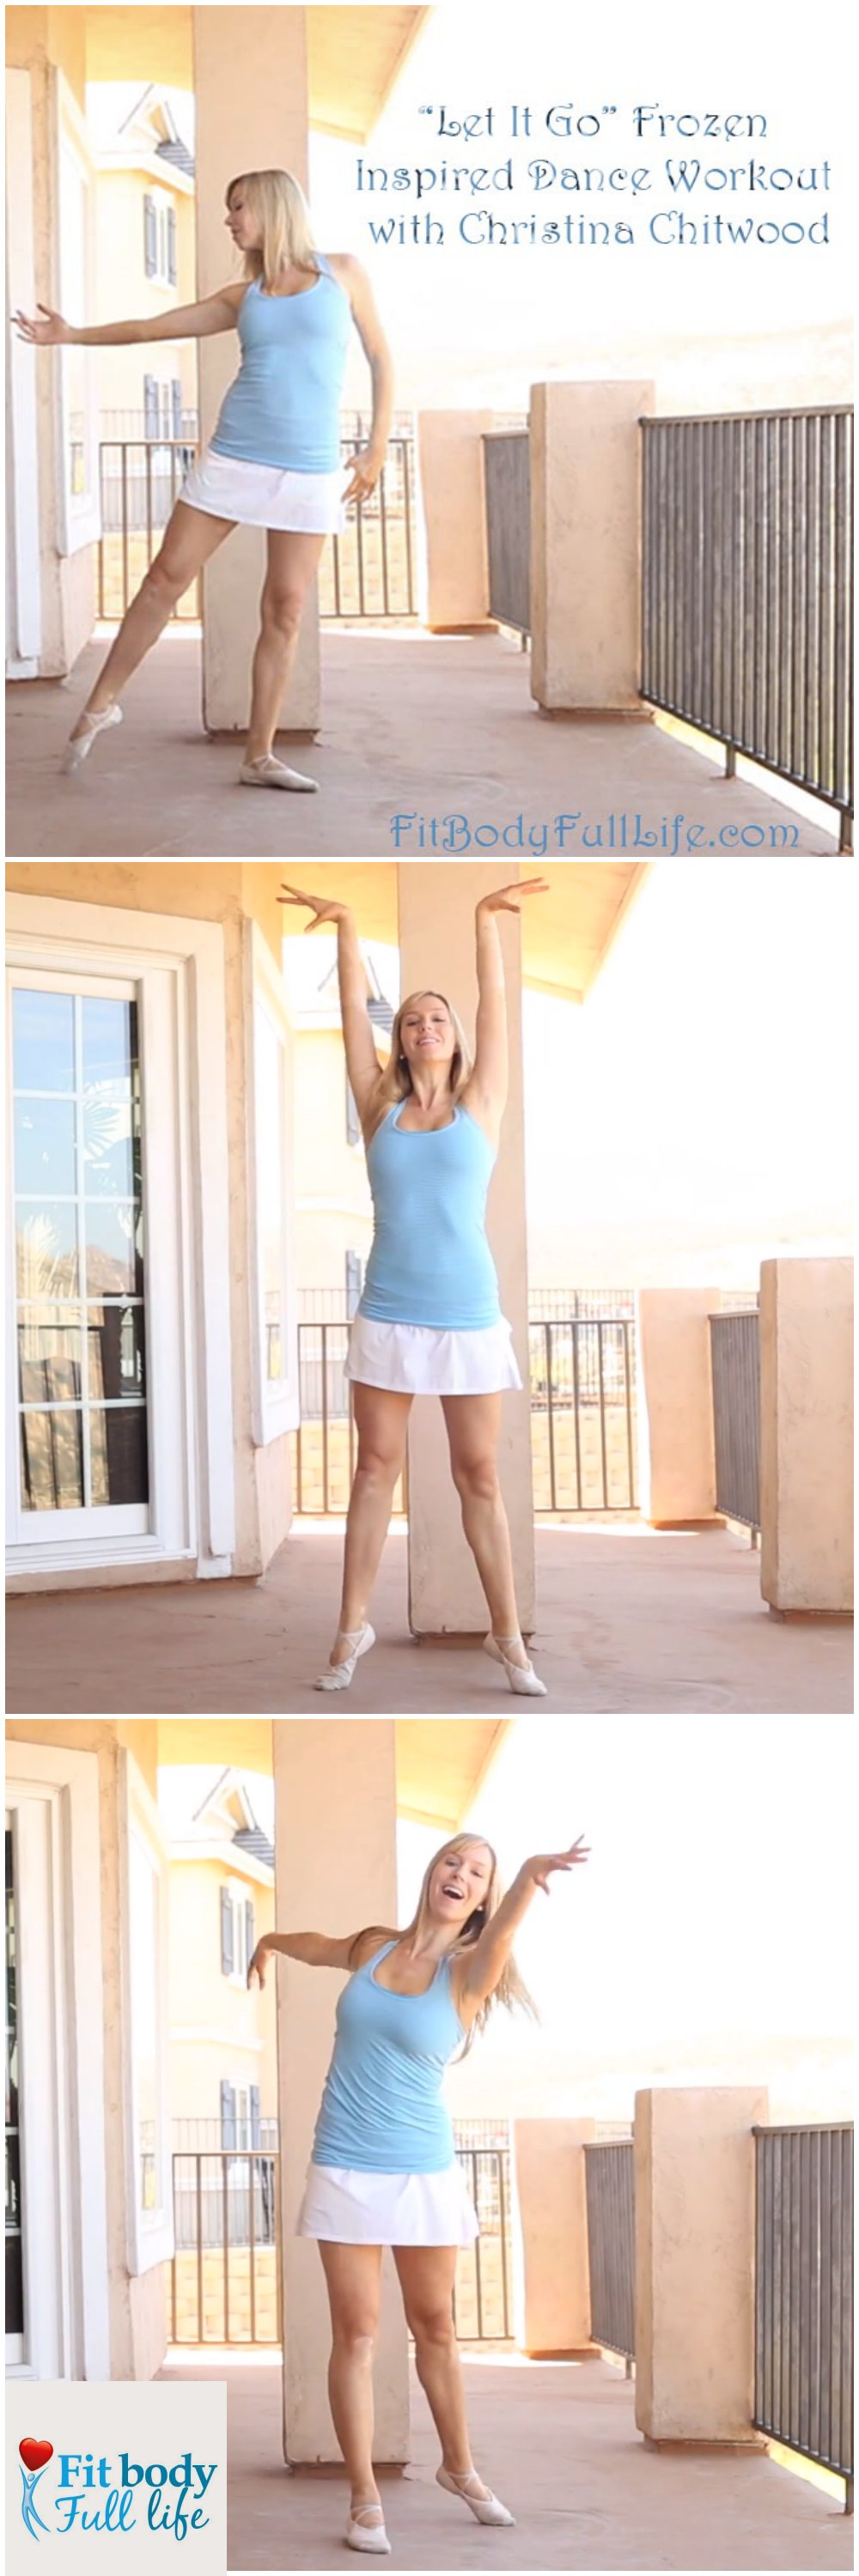 Let It Go Frozen Inspired Dance Workout With Christina Chitwood - Vertical Image